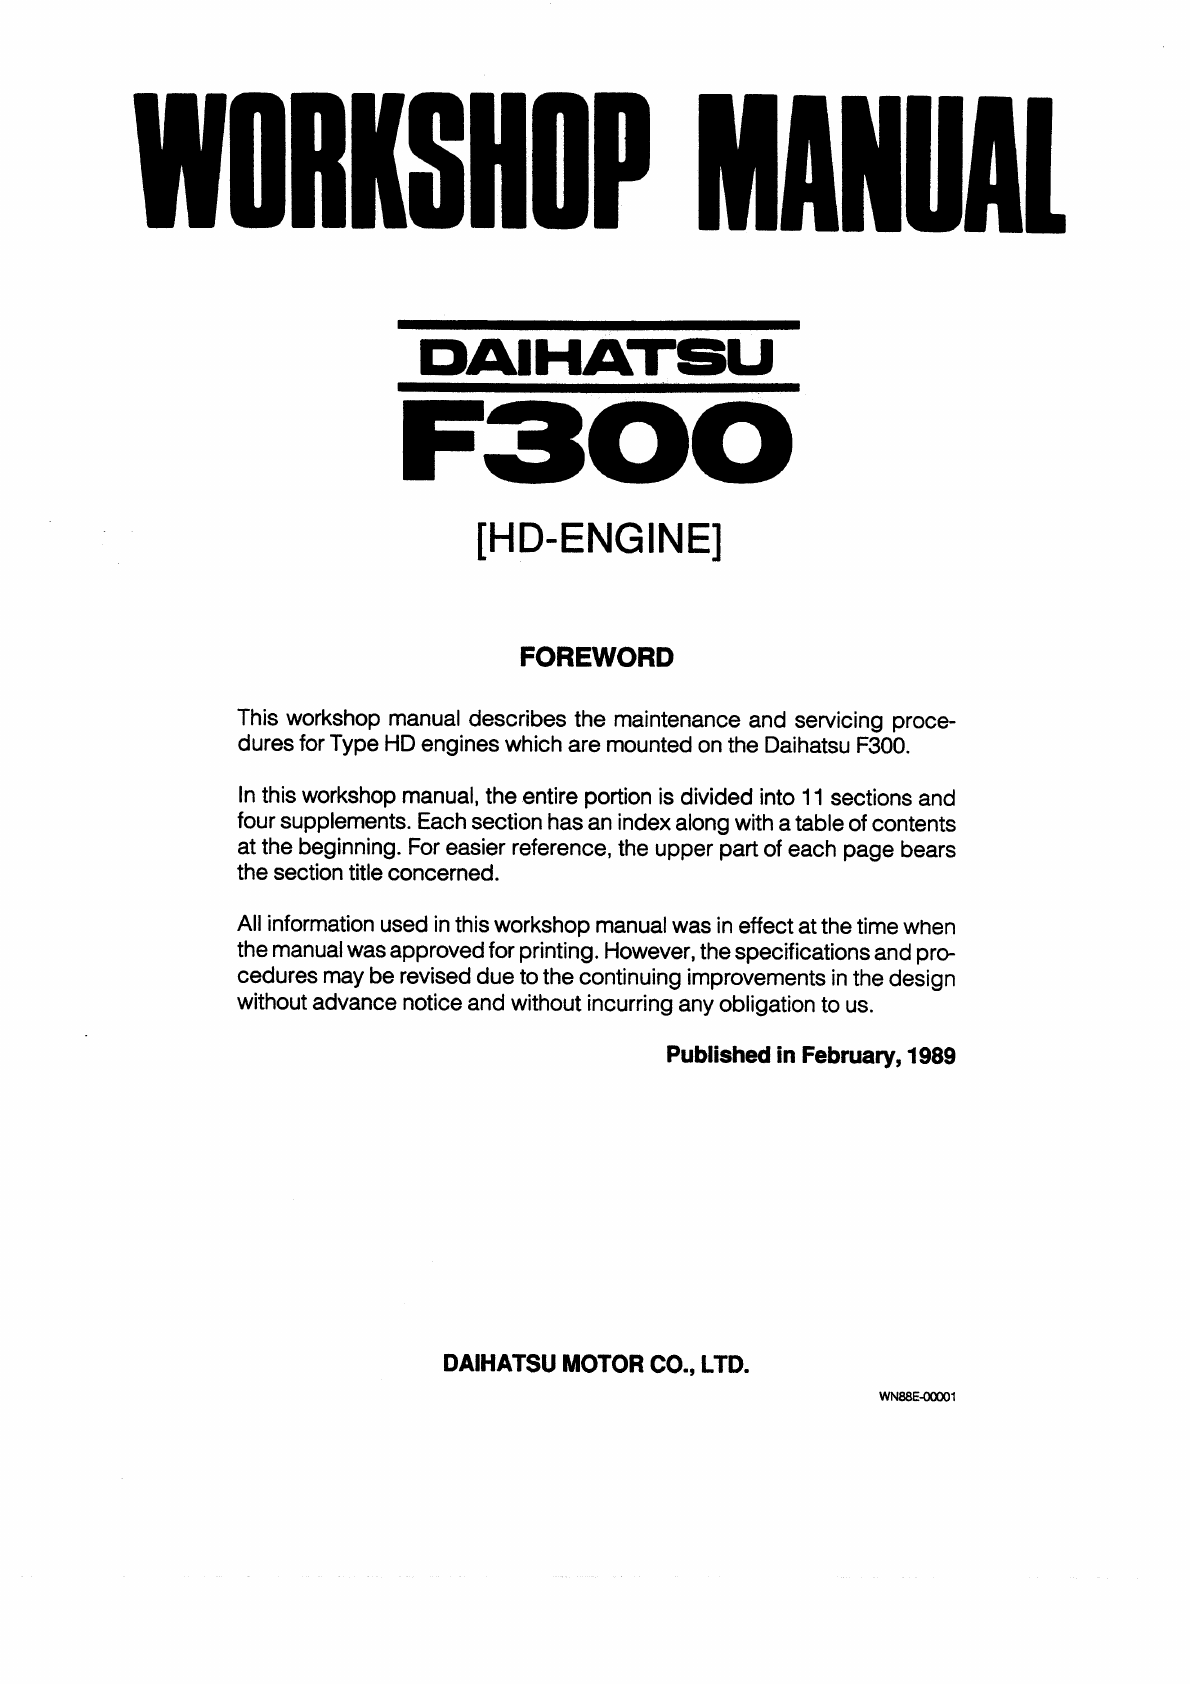 small resolution of daihatsu 327 engine manual product user guide instruction u2022 rh mekatta co residential electrical wiring diagrams